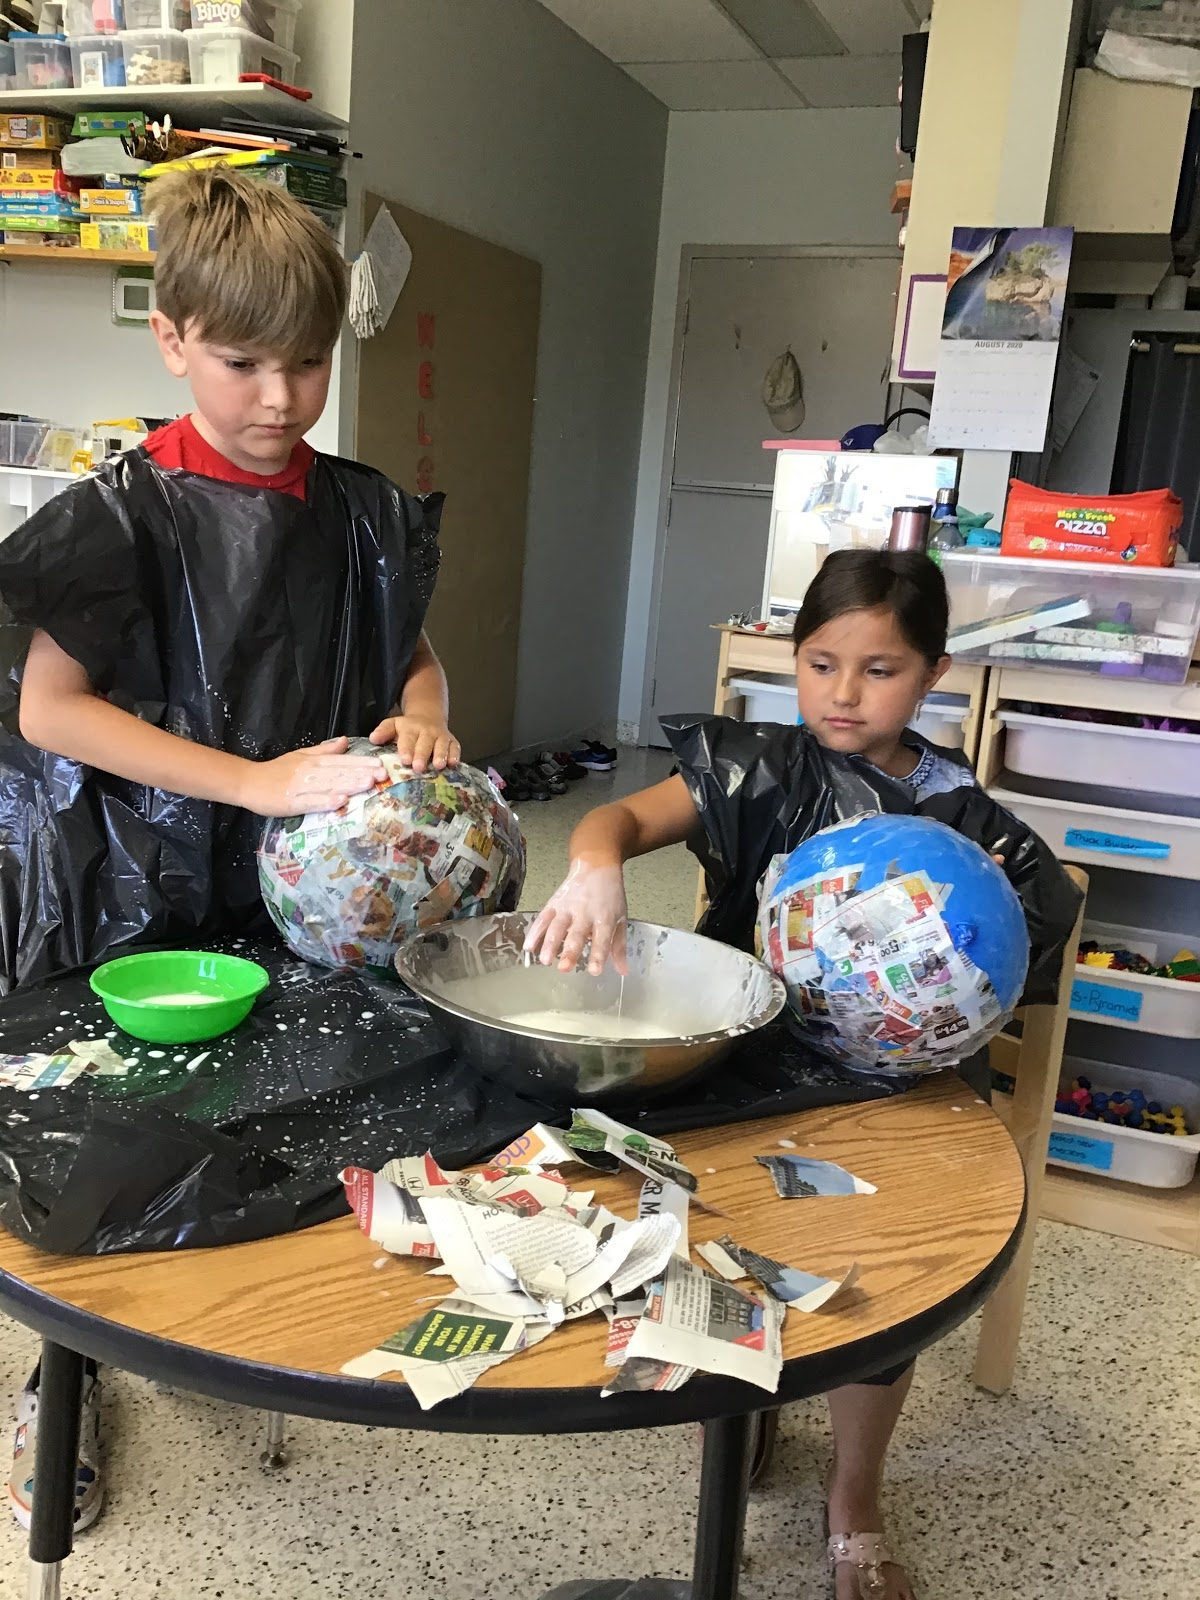 2 kids doing arts and crafts with paper mache